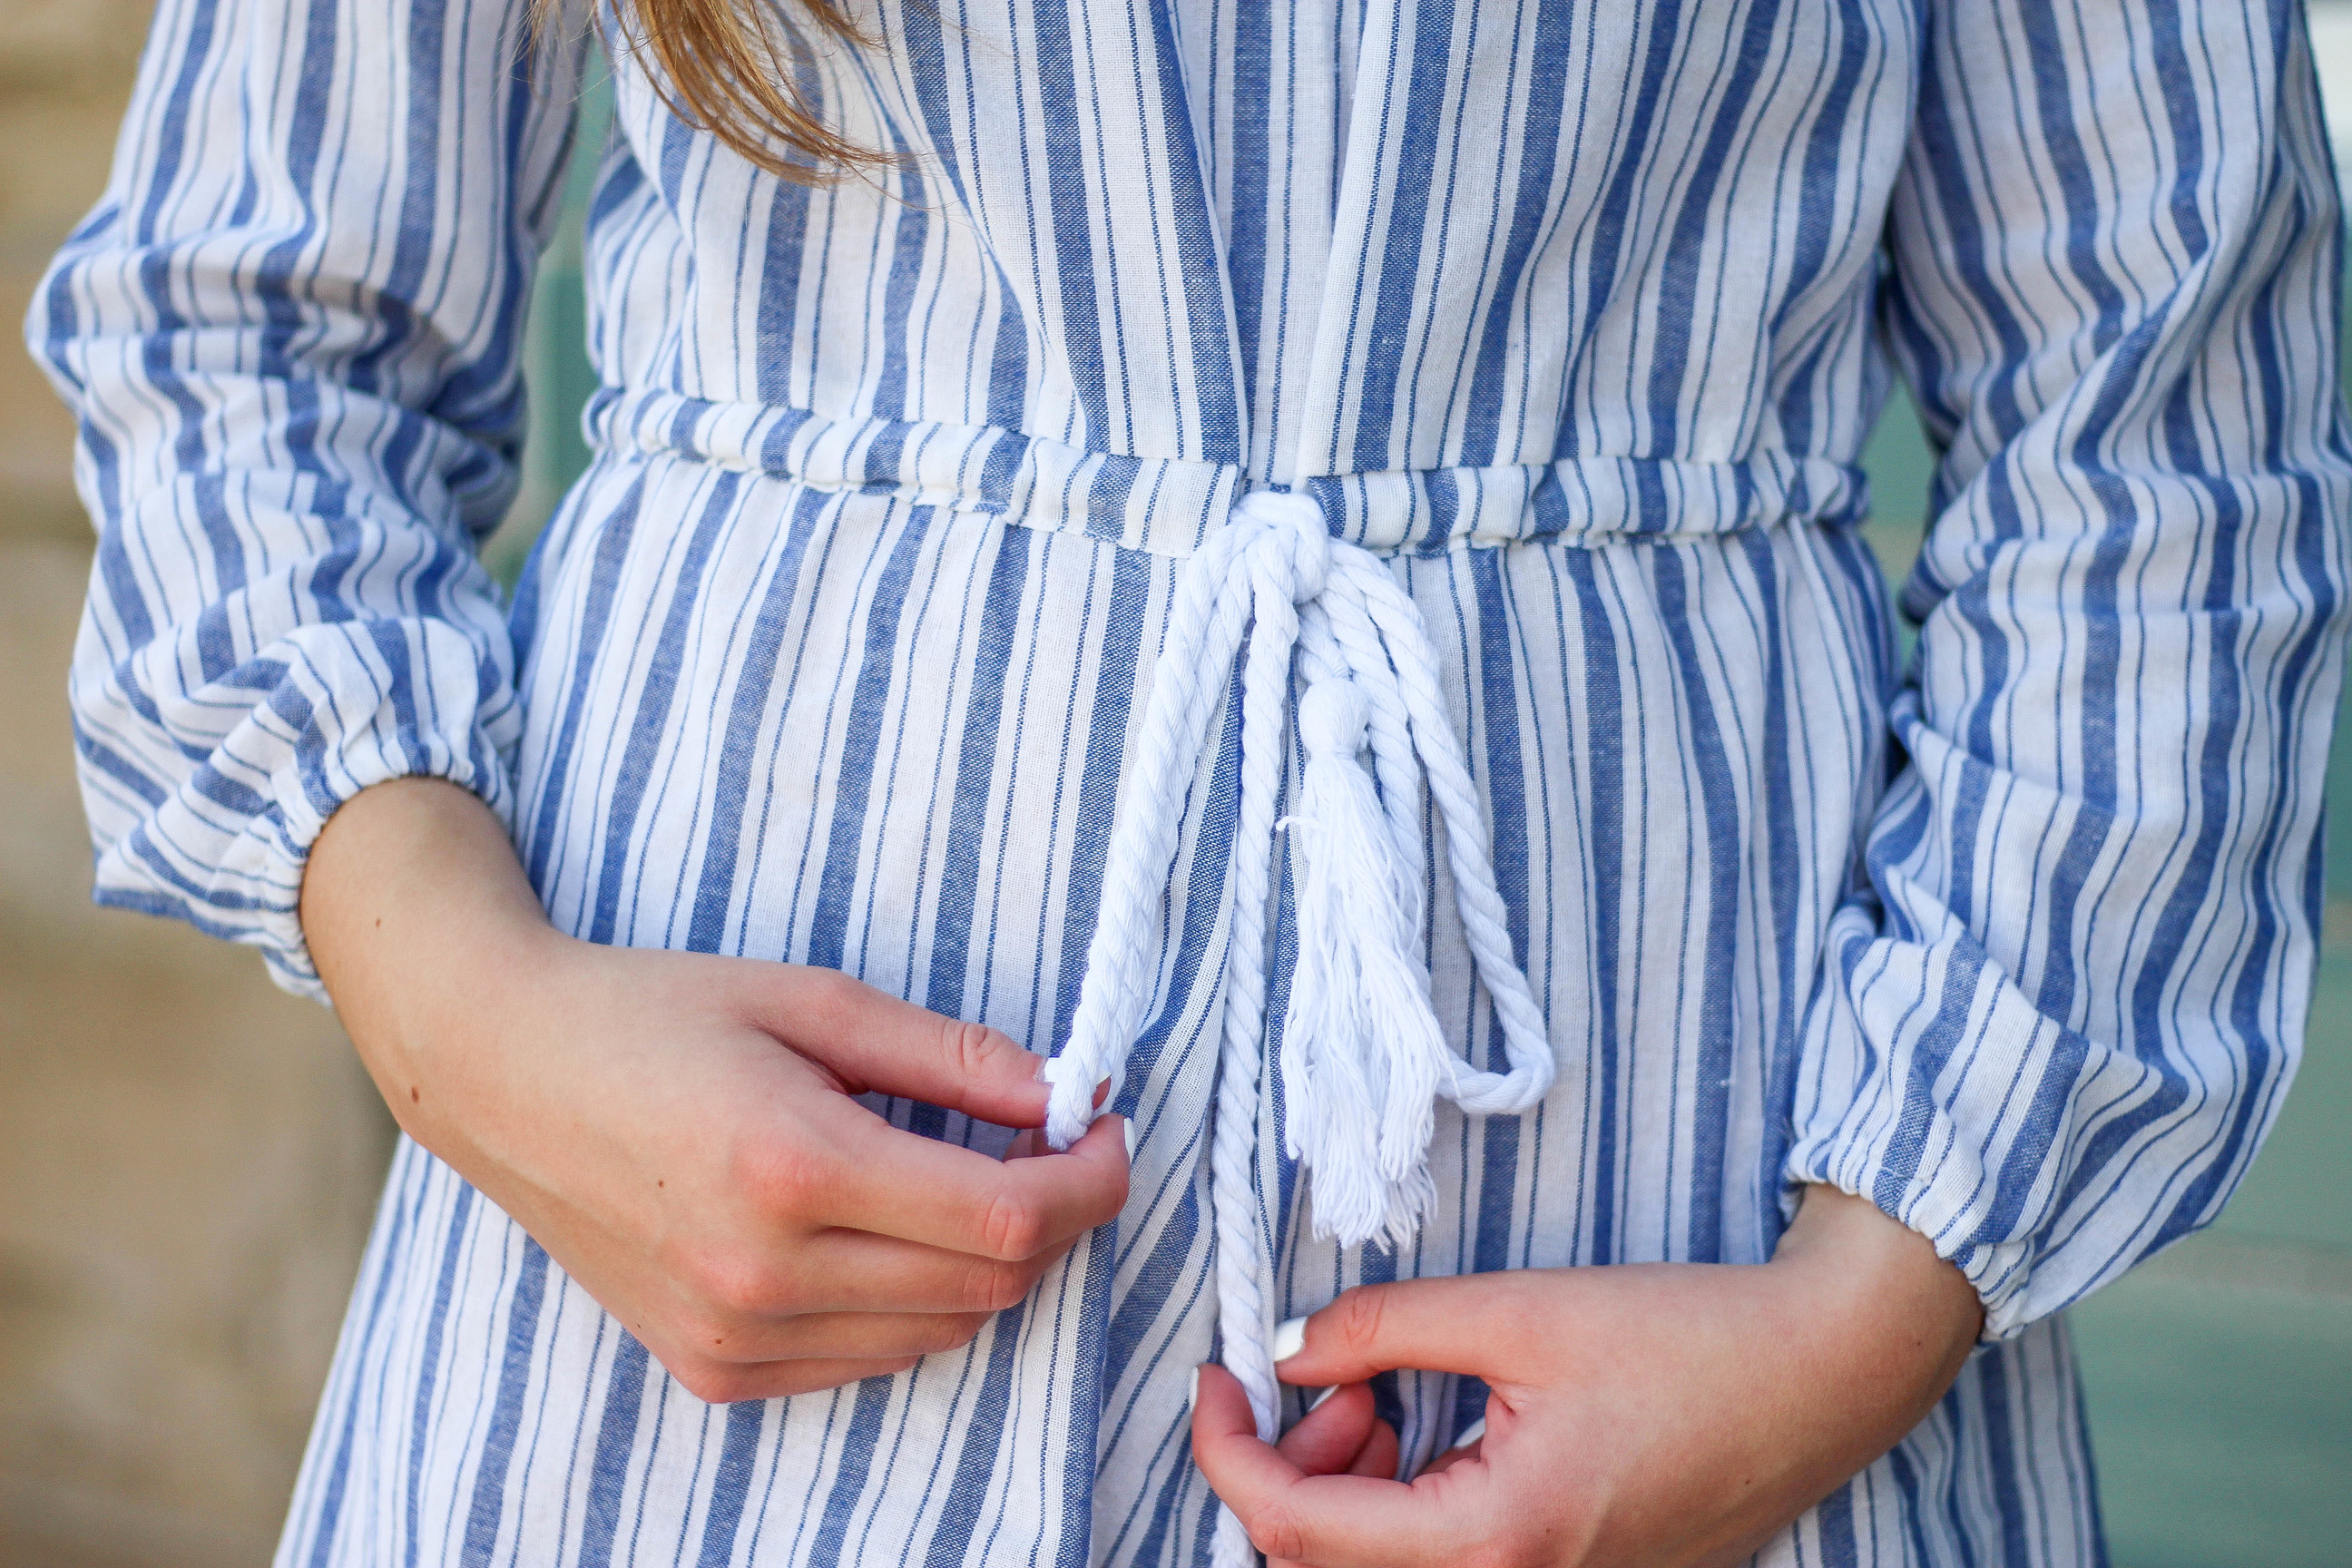 Striped Romper, off the shoulder romper, cute romper, inexpensive romper on daily dose of charm by lauren lindmark